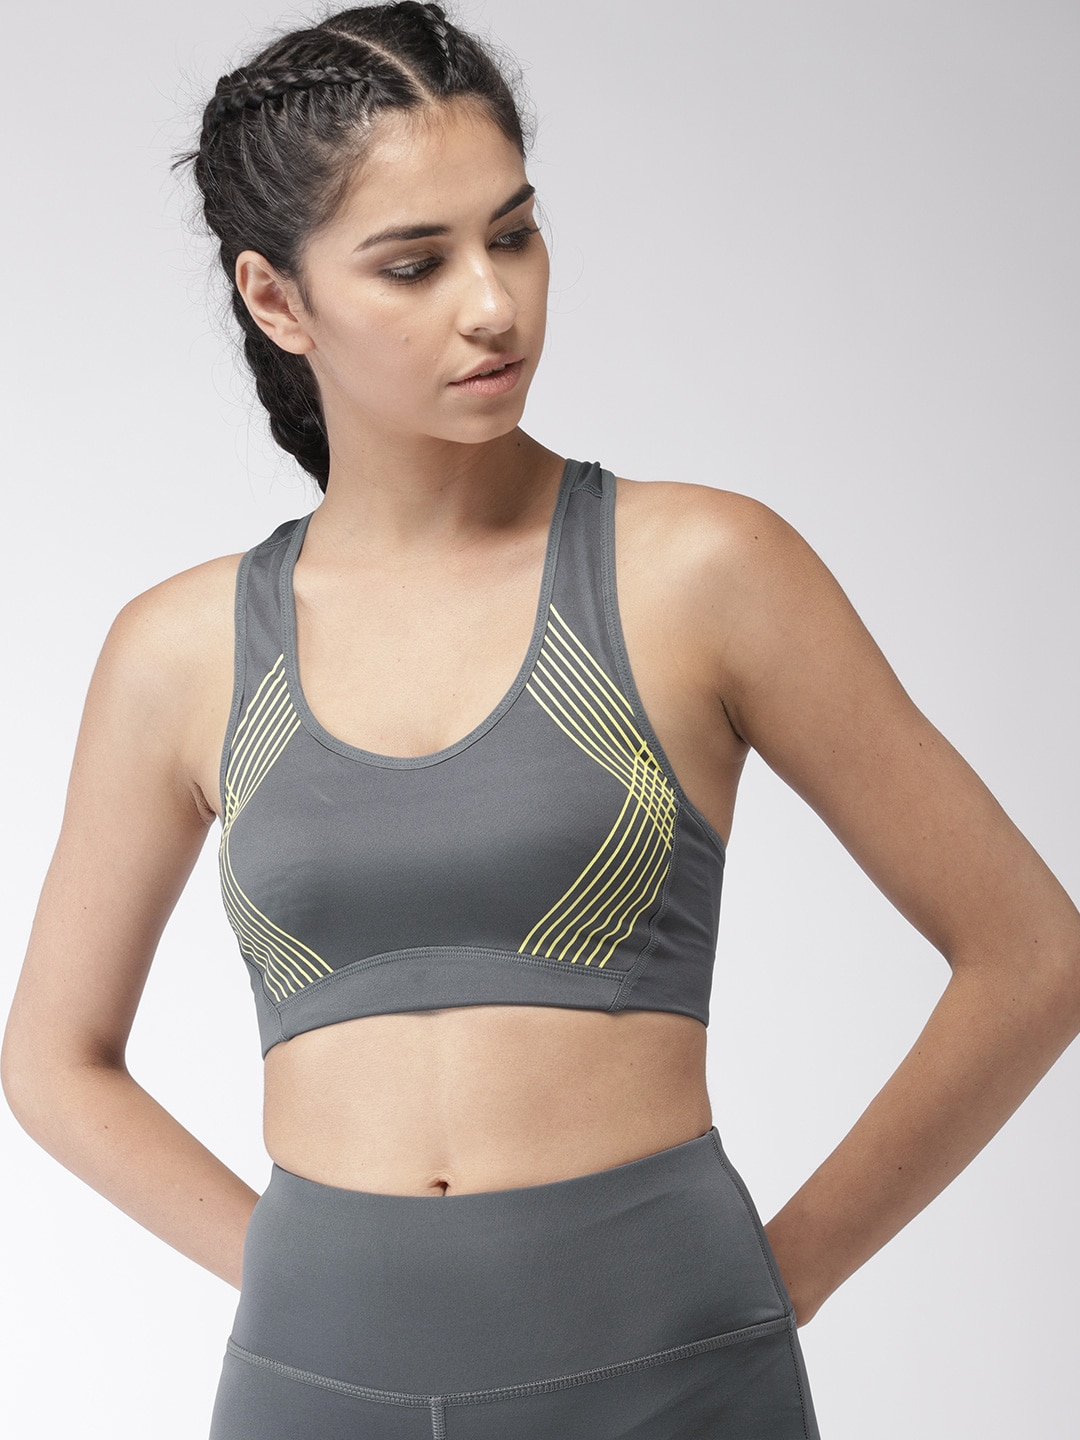 d0e168758fb 2GO Charcoal Grey Solid Non-Wired Heavily Padded Sports Bra EL-WSB325-S9